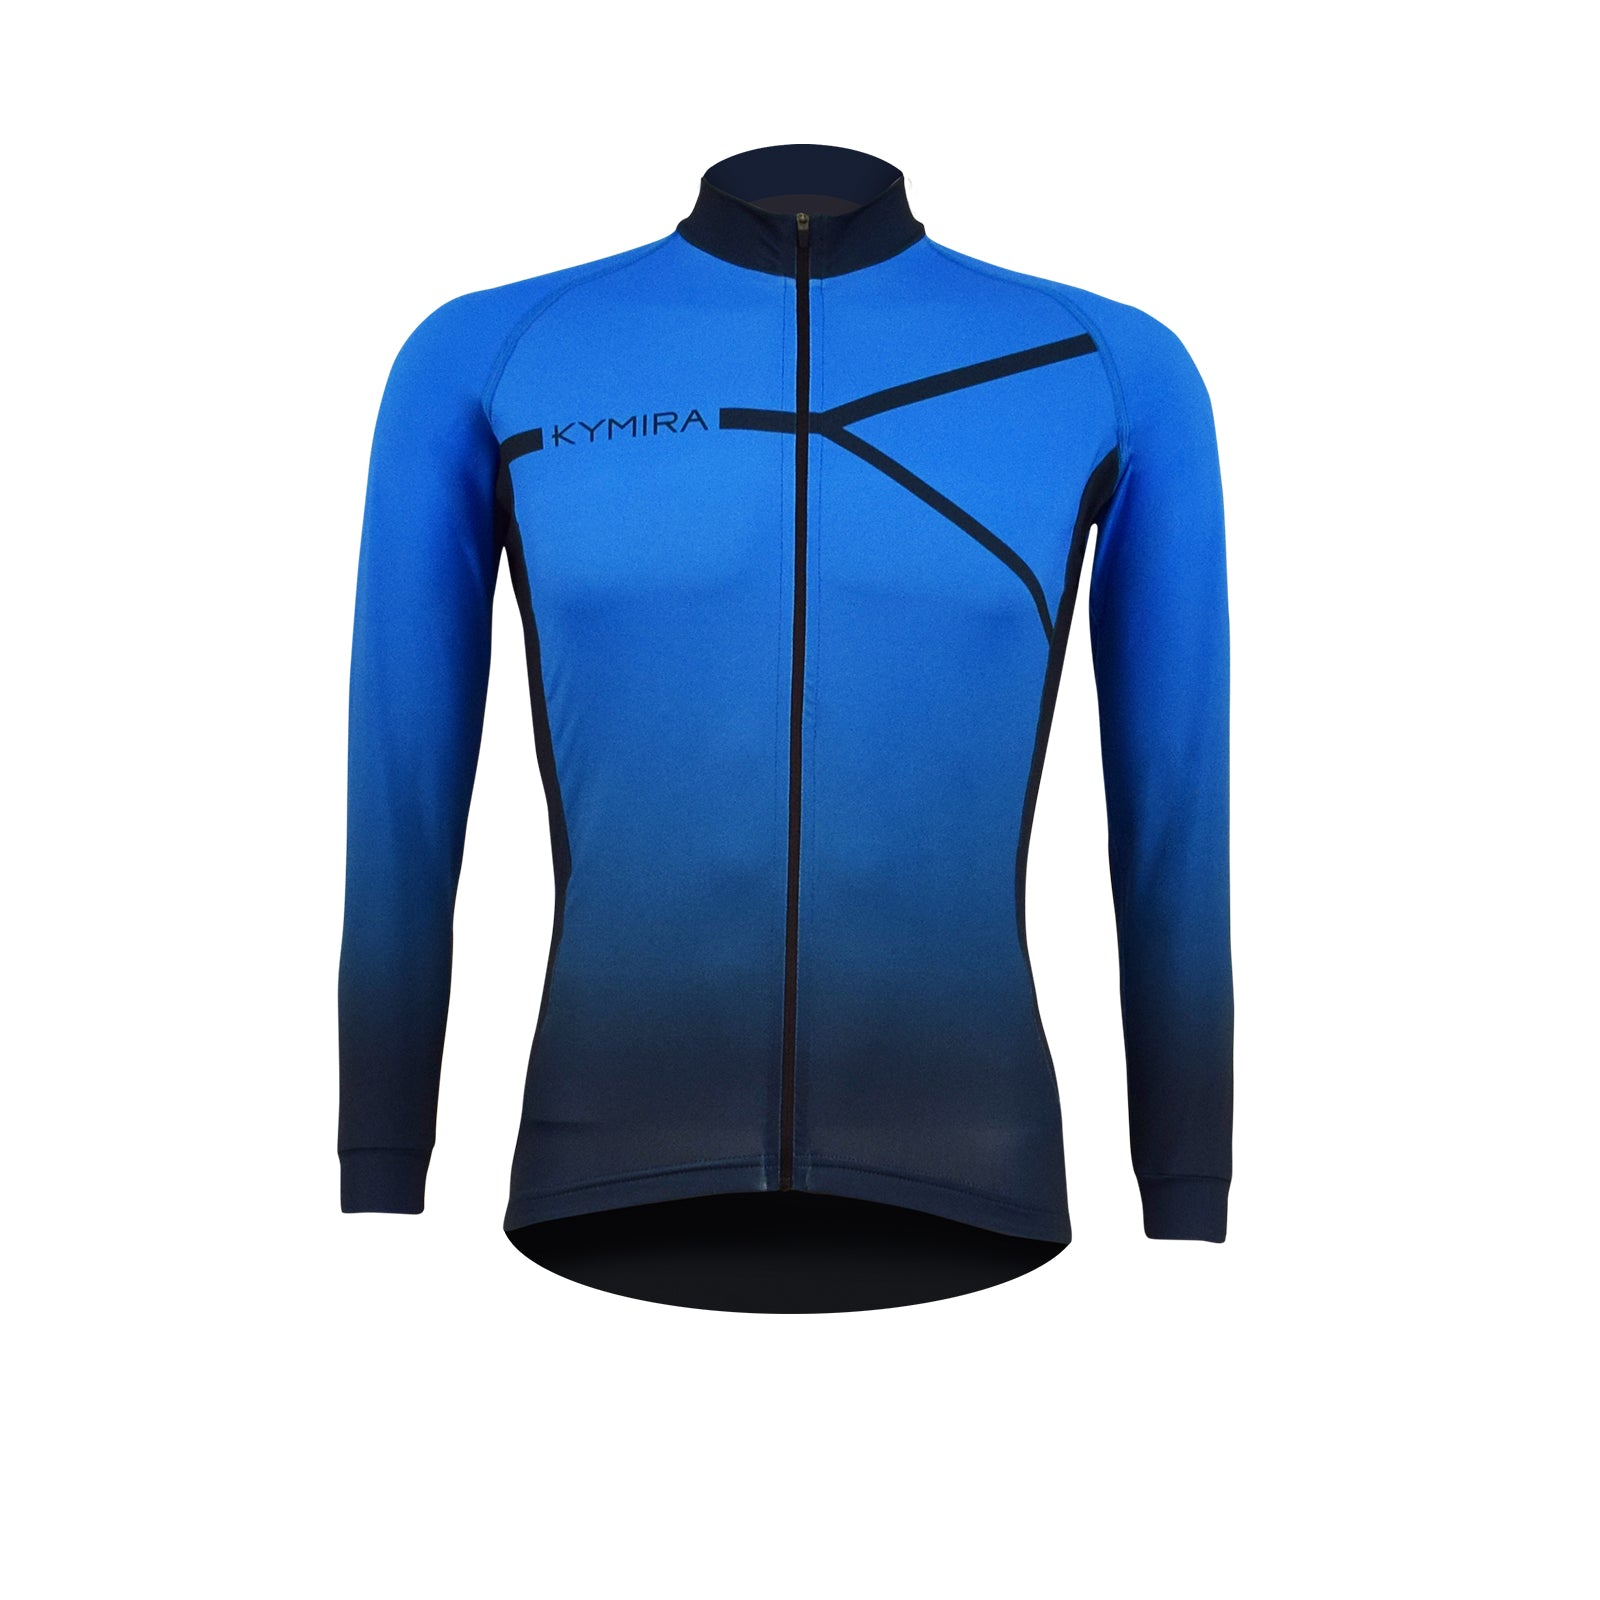 88809e4ca Men s Infrared PrO2 Long Sleeve Cycle Jersey Blue to Black